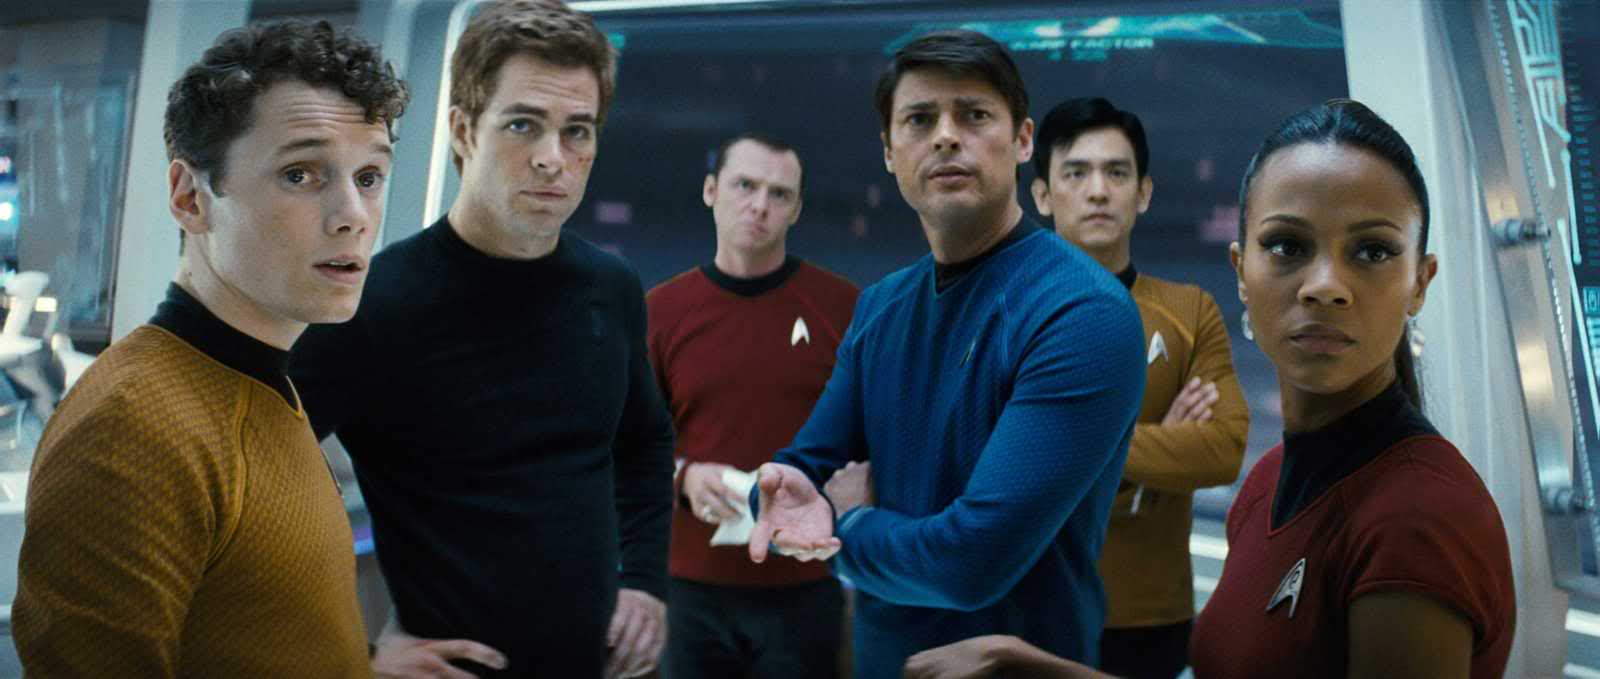 Chekov (Anton Yelchin), Captain Kirk (Chris Pine), Mr Scott (Simon Pegg), Dr McCoy (Karl Urban), Sulu (John Cho) and Uhura (Zoe Saldana) in Star Trek (2009)